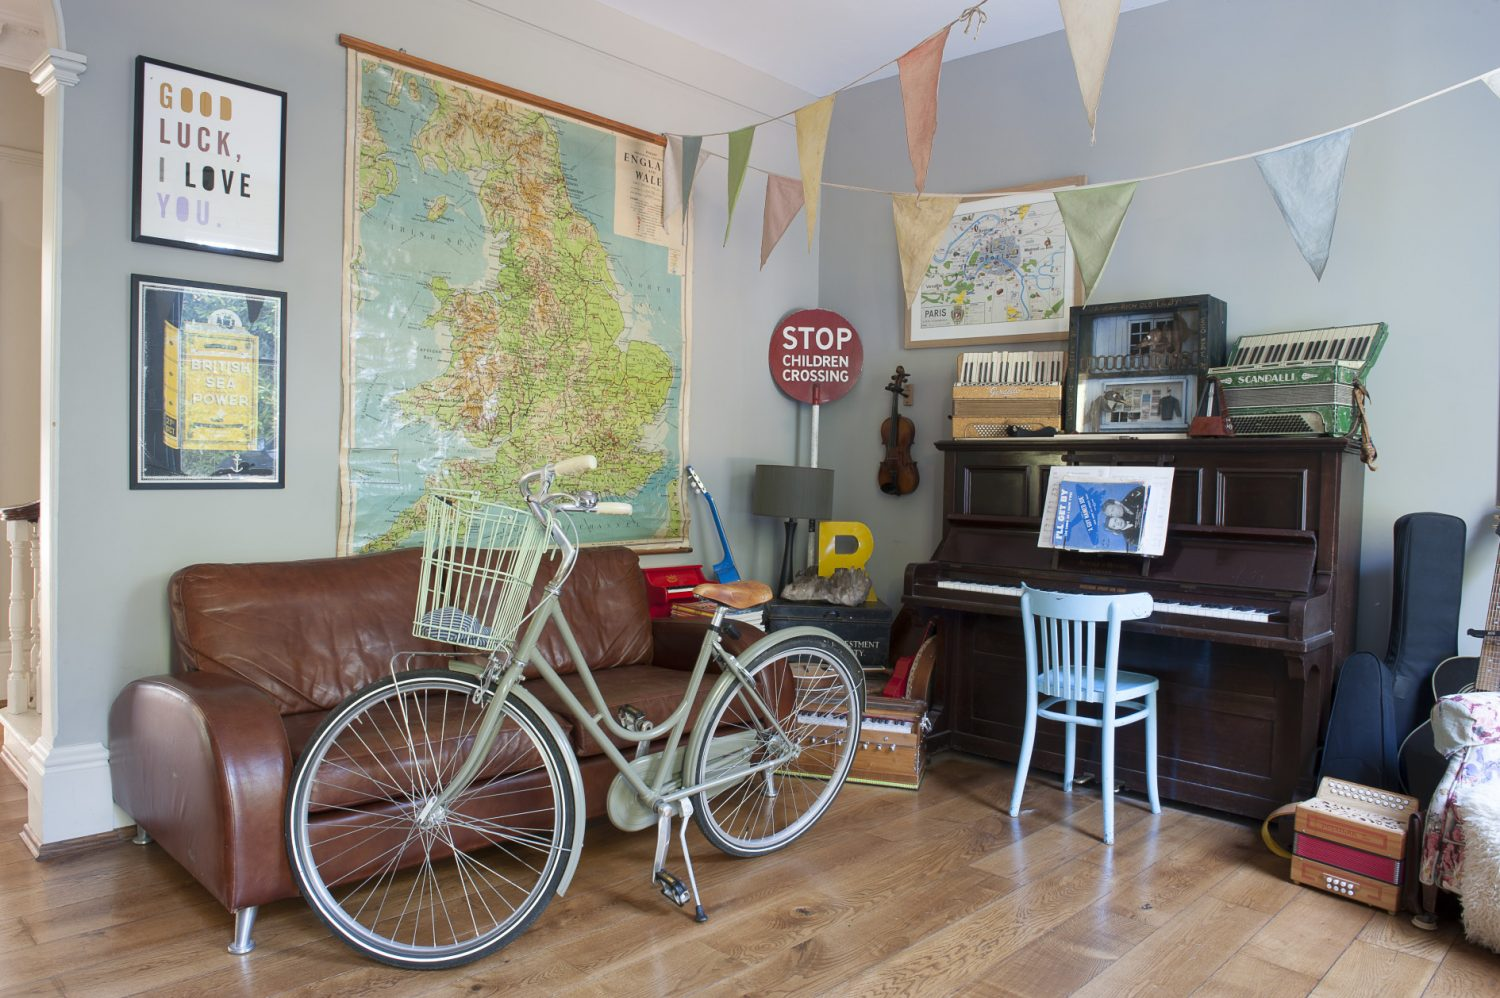 The entrance hall, swathed in bunting, is home to an upright piano as well as several accordions. On top of the piano sits a Len Shelley bird artwork that Sarah bought her husband for his 40th birthday